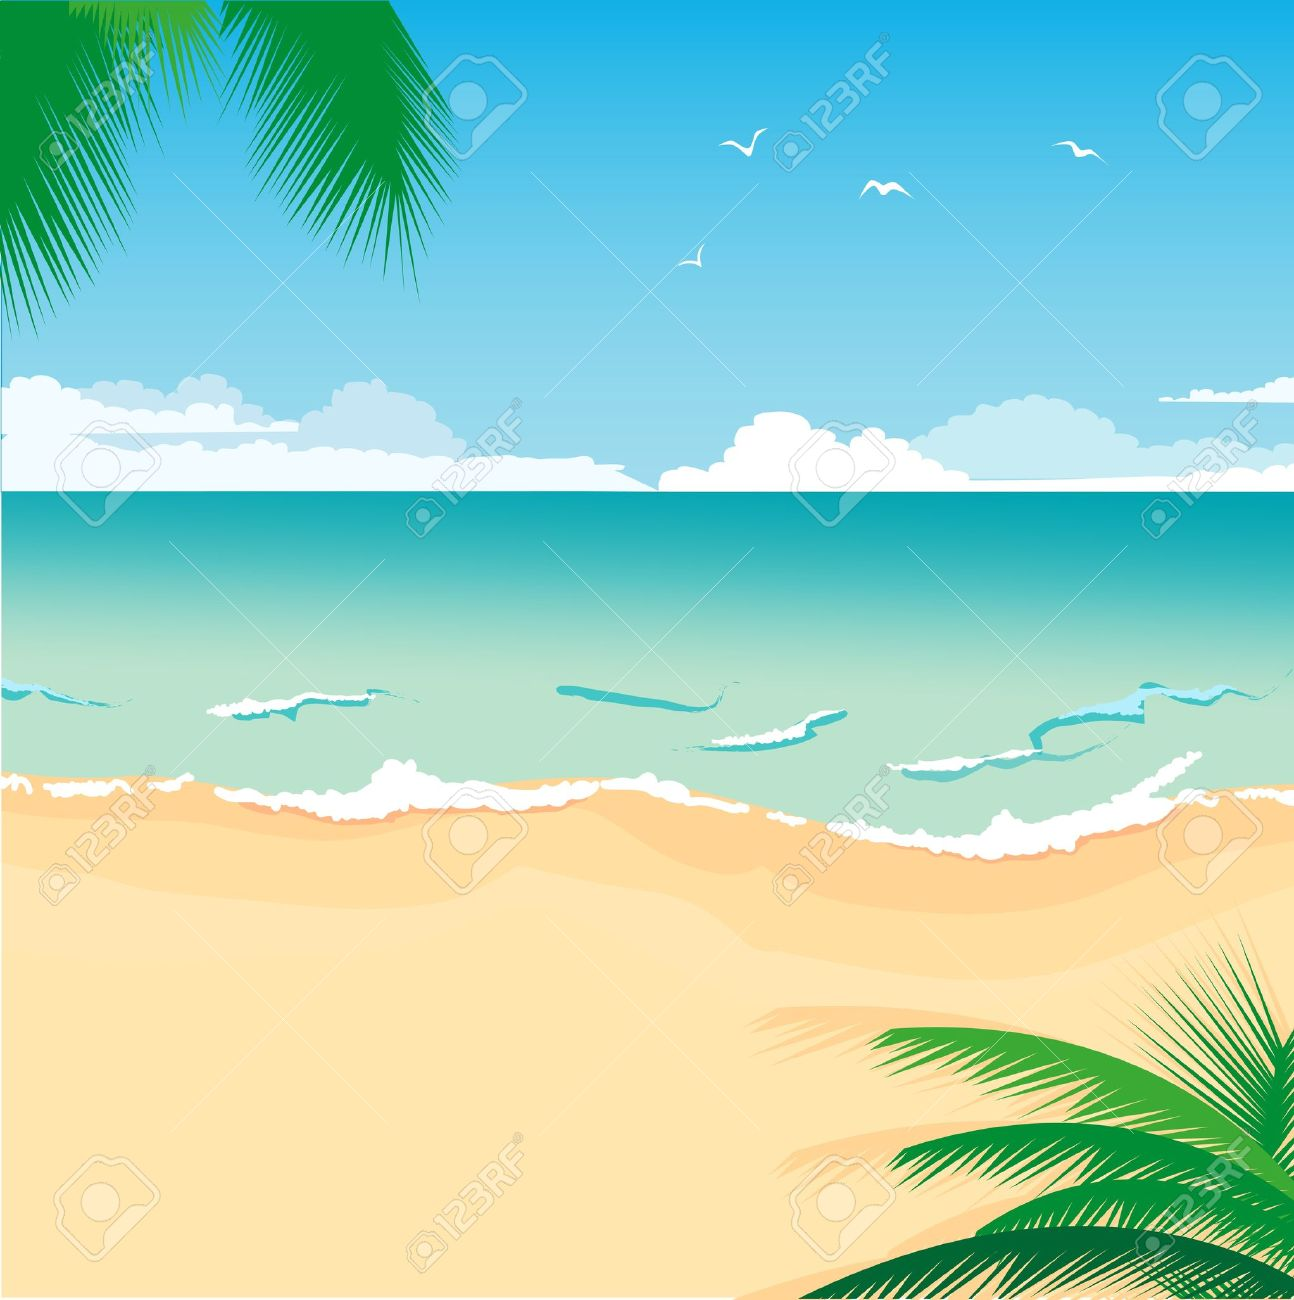 illustration of a tropical sea beach for summer design royalty free